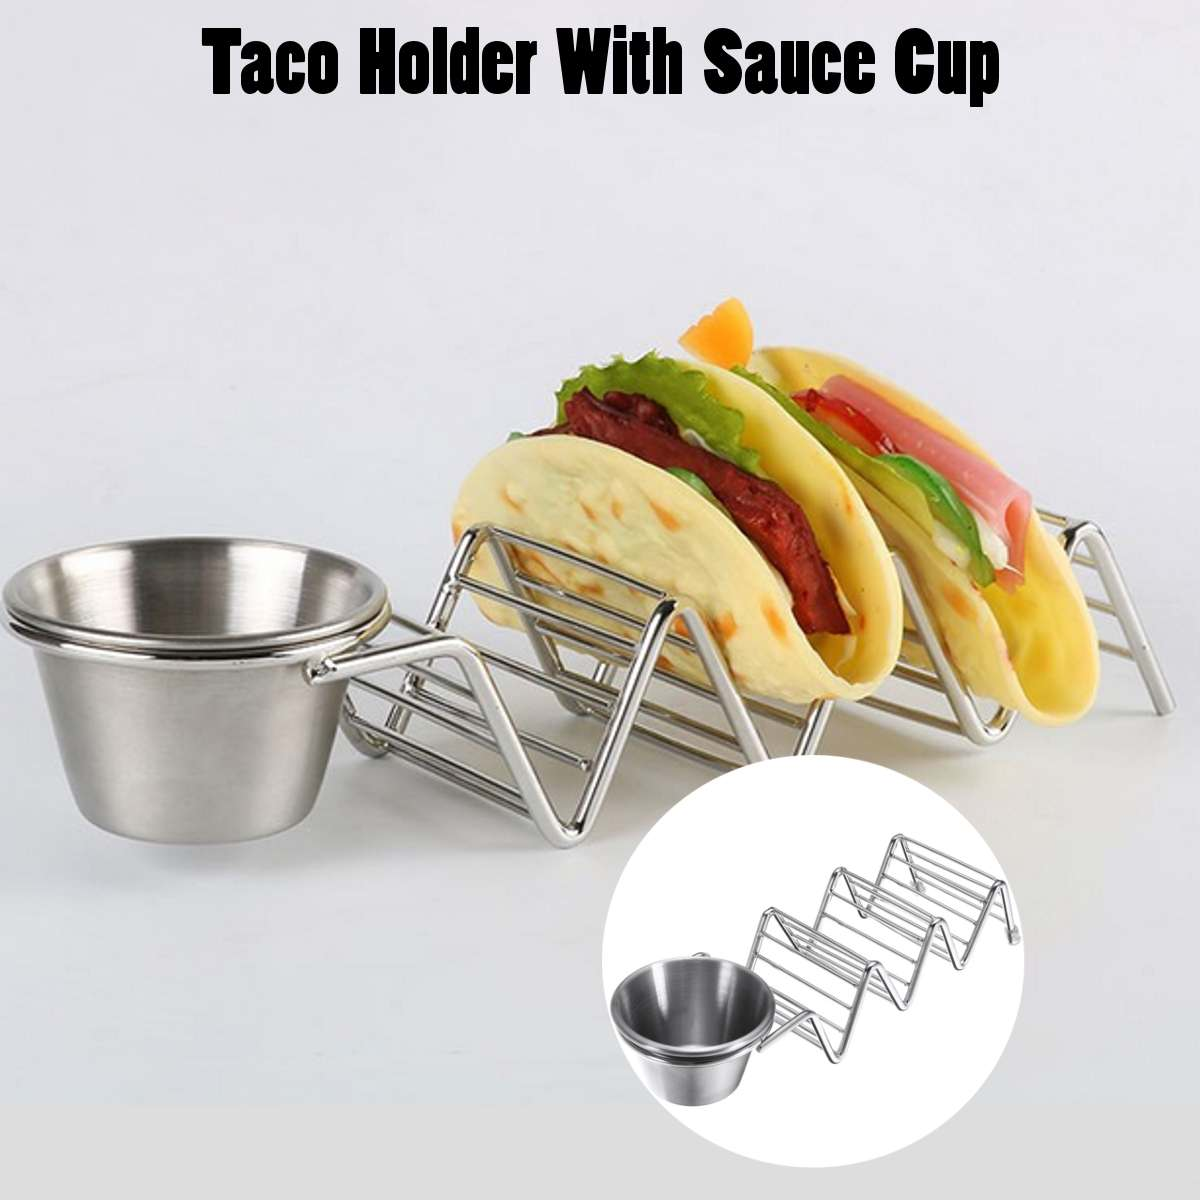 3 Slot Tortilla Rack Stainless Steel Wave Shaped Taco Display Stand Up Holder Rack With Sauce Dish Party Pie Pizza Baking image